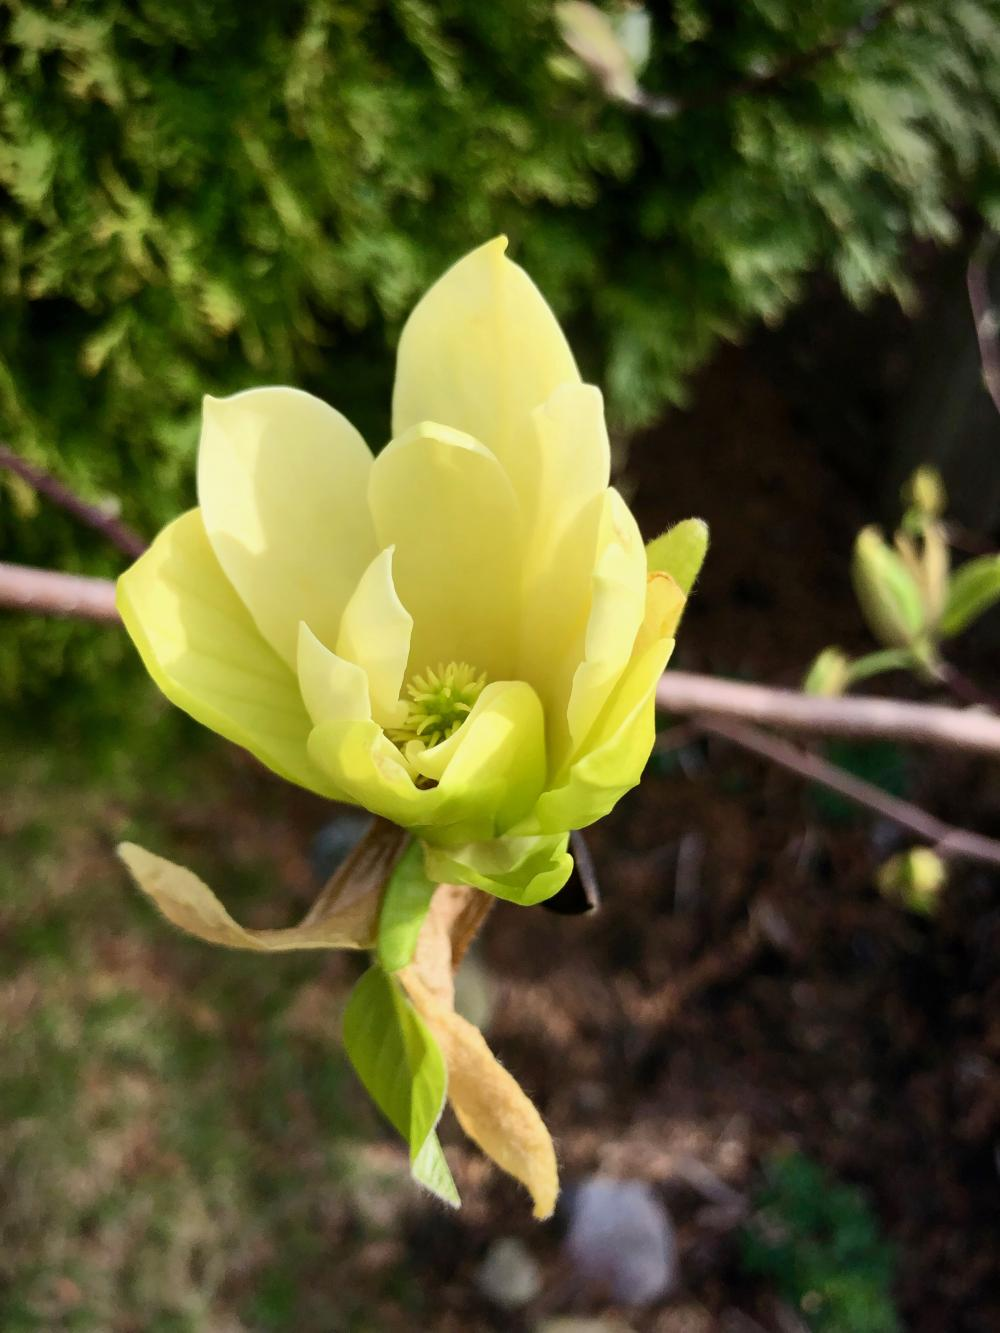 A Tuesday's magnolia flower